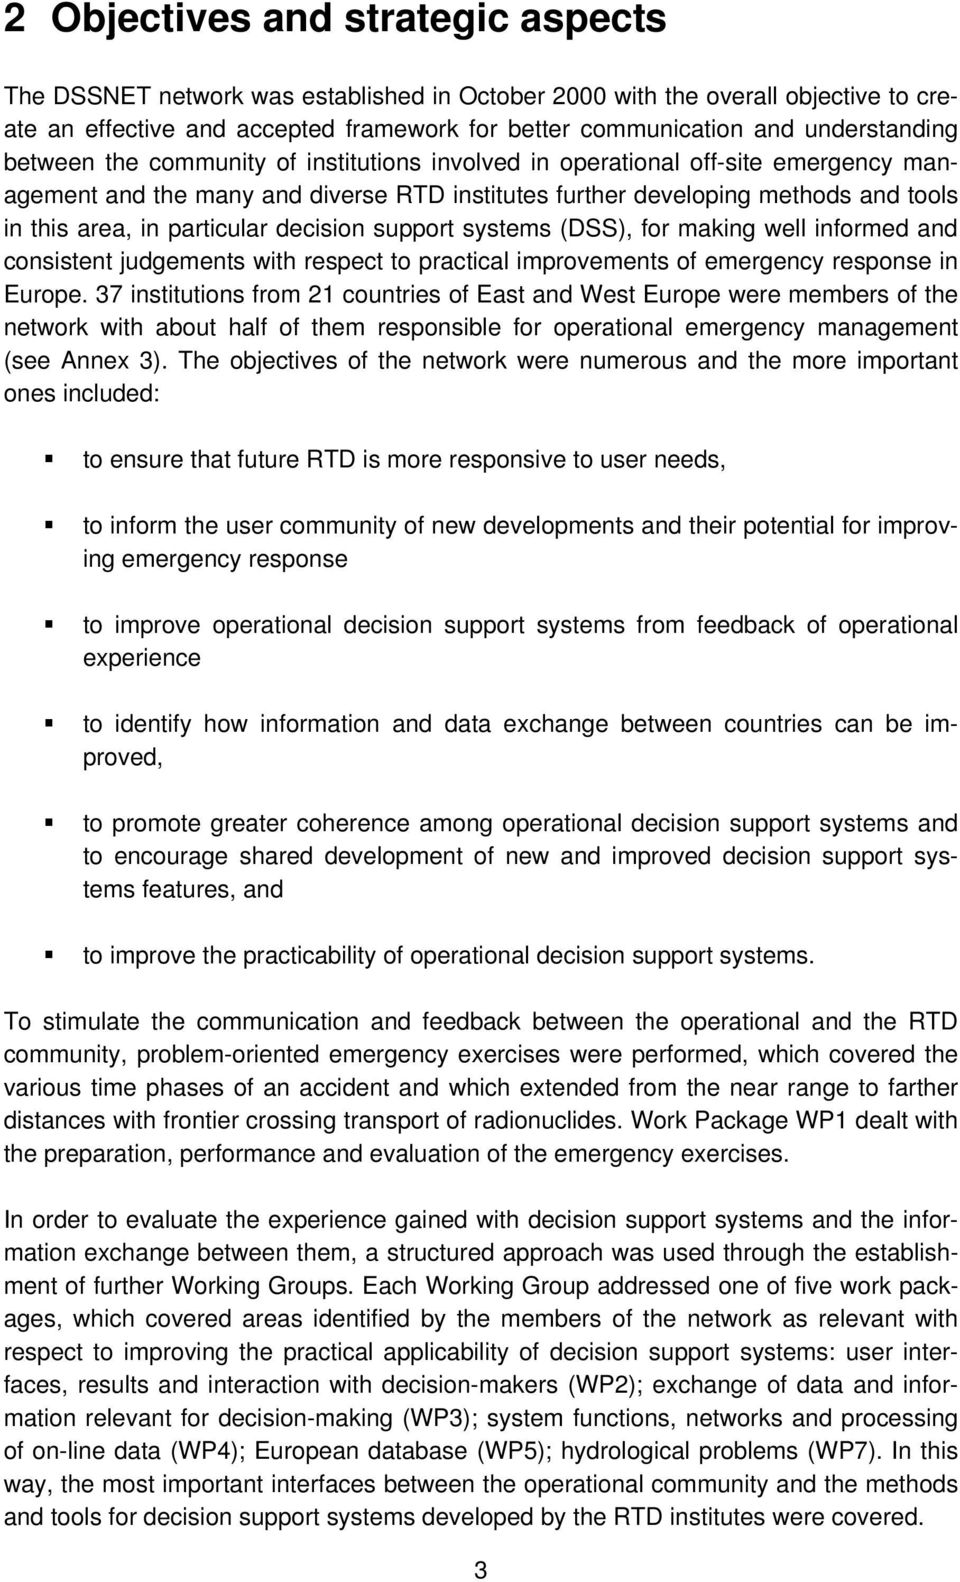 particular decision support systems (DSS), for making well informed and consistent judgements with respect to practical improvements of emergency response in Europe.